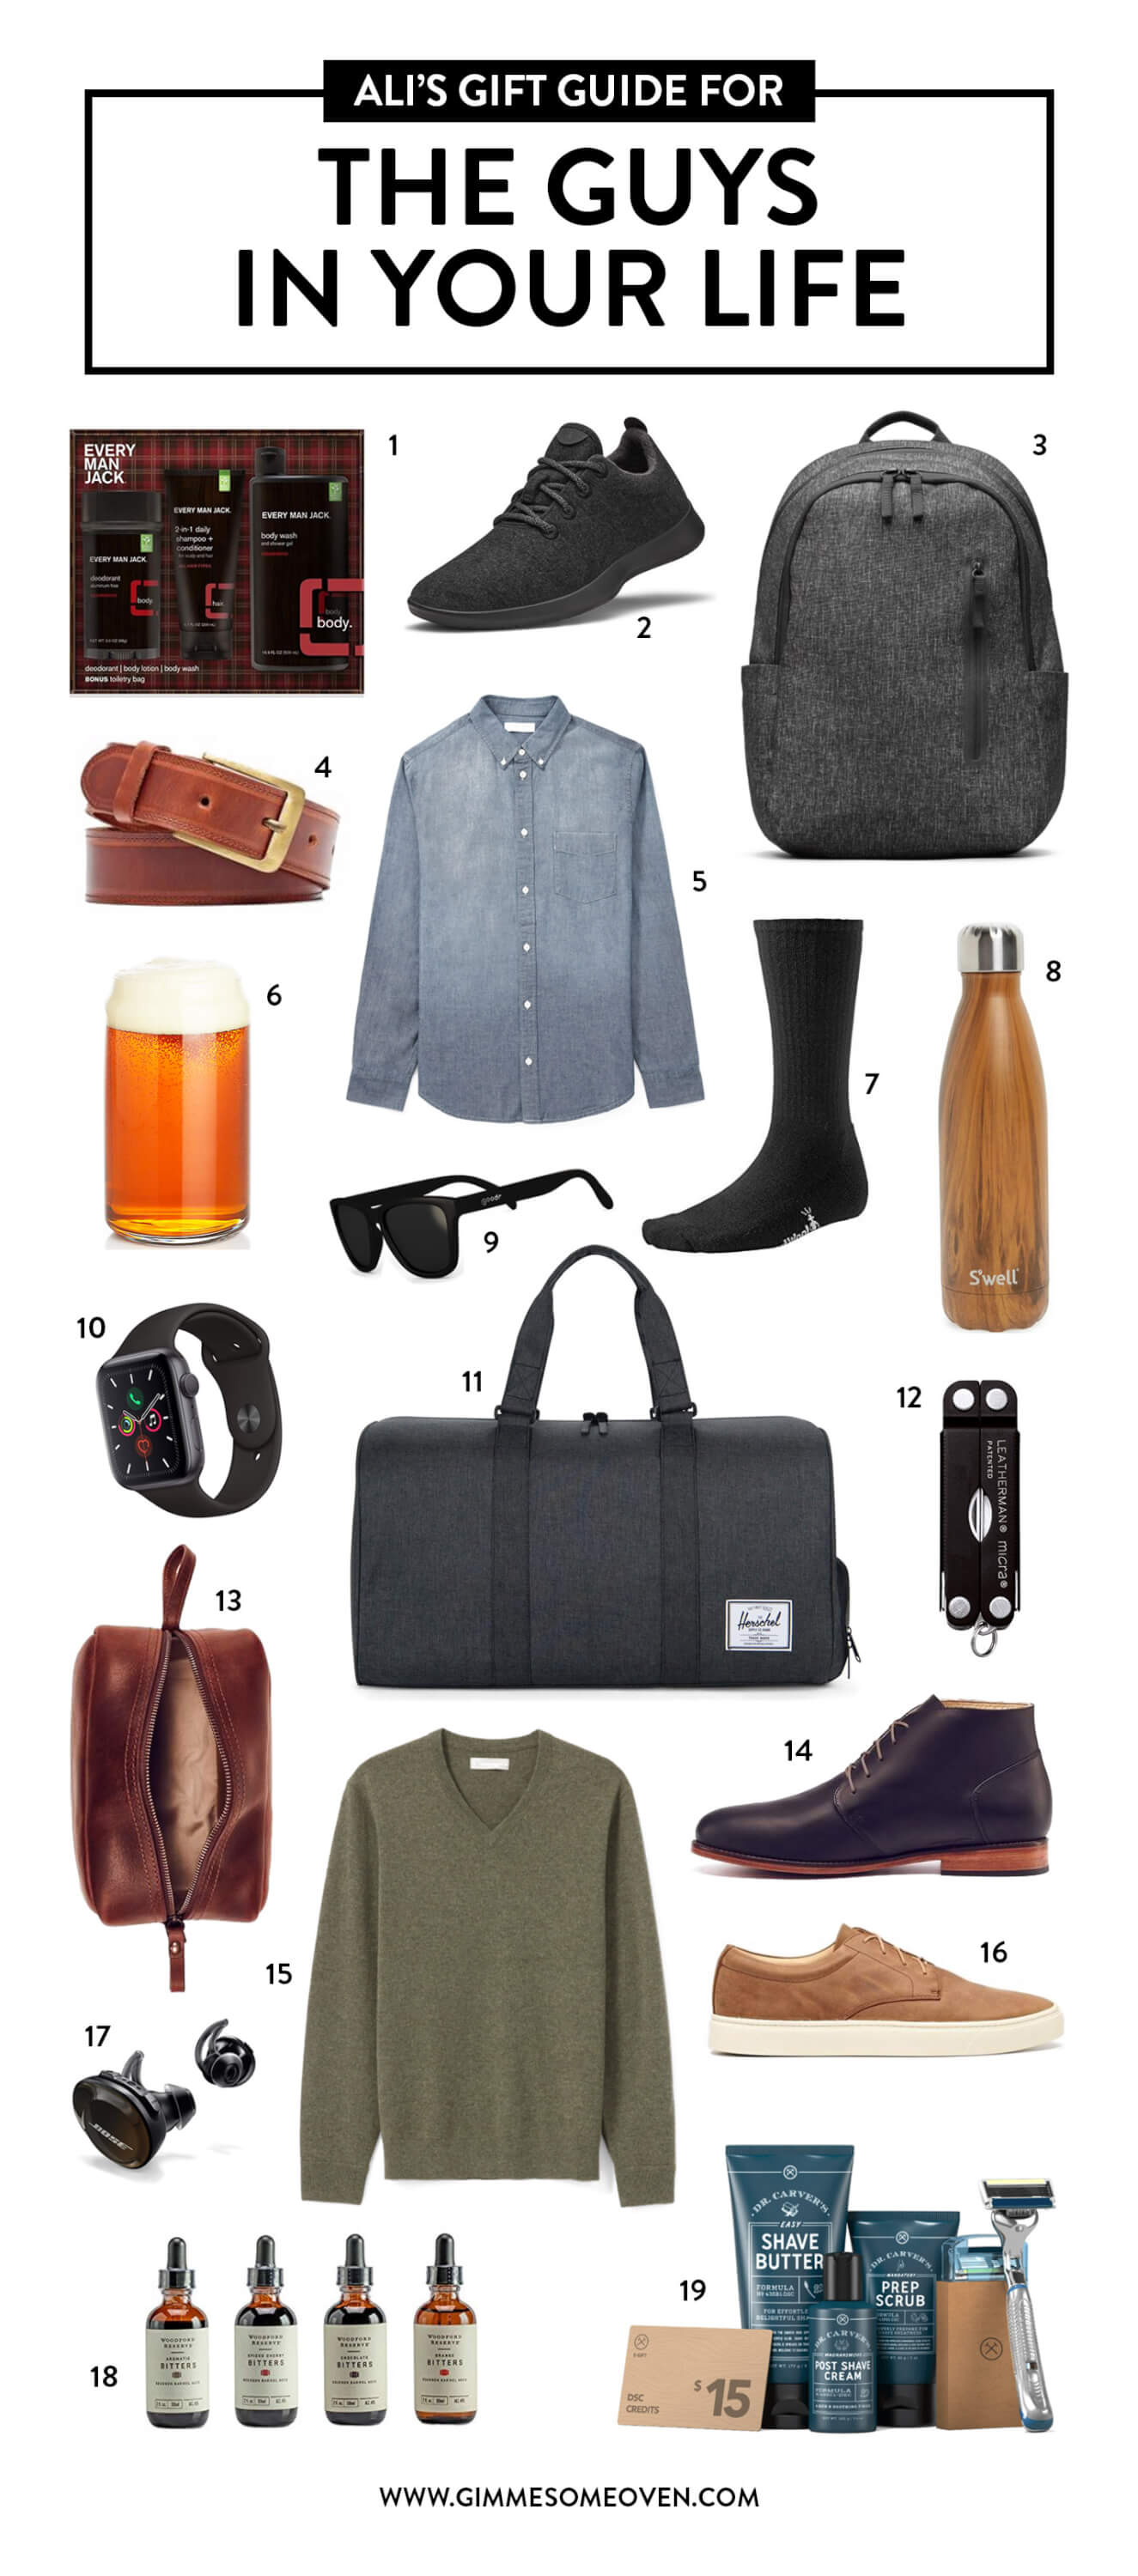 Gift Guide For The Guys In Your Life